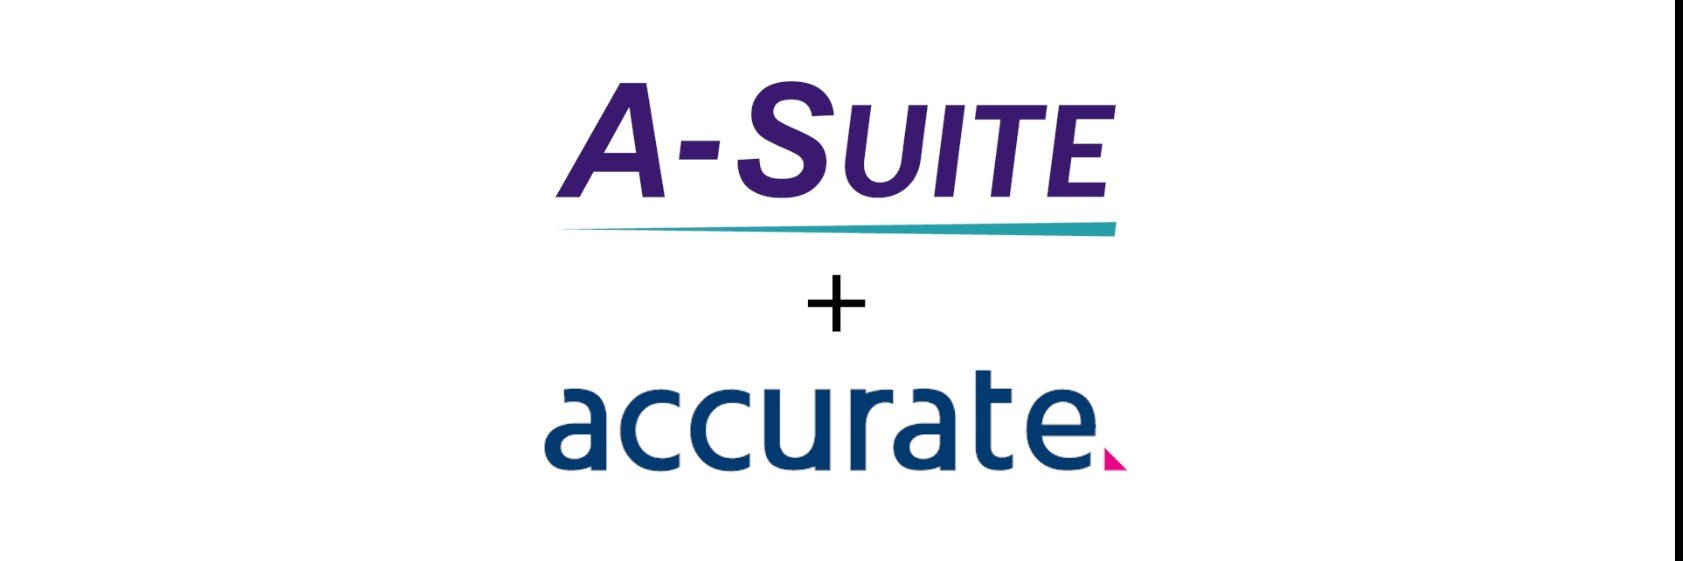 A-Suite Accurate Background Integration